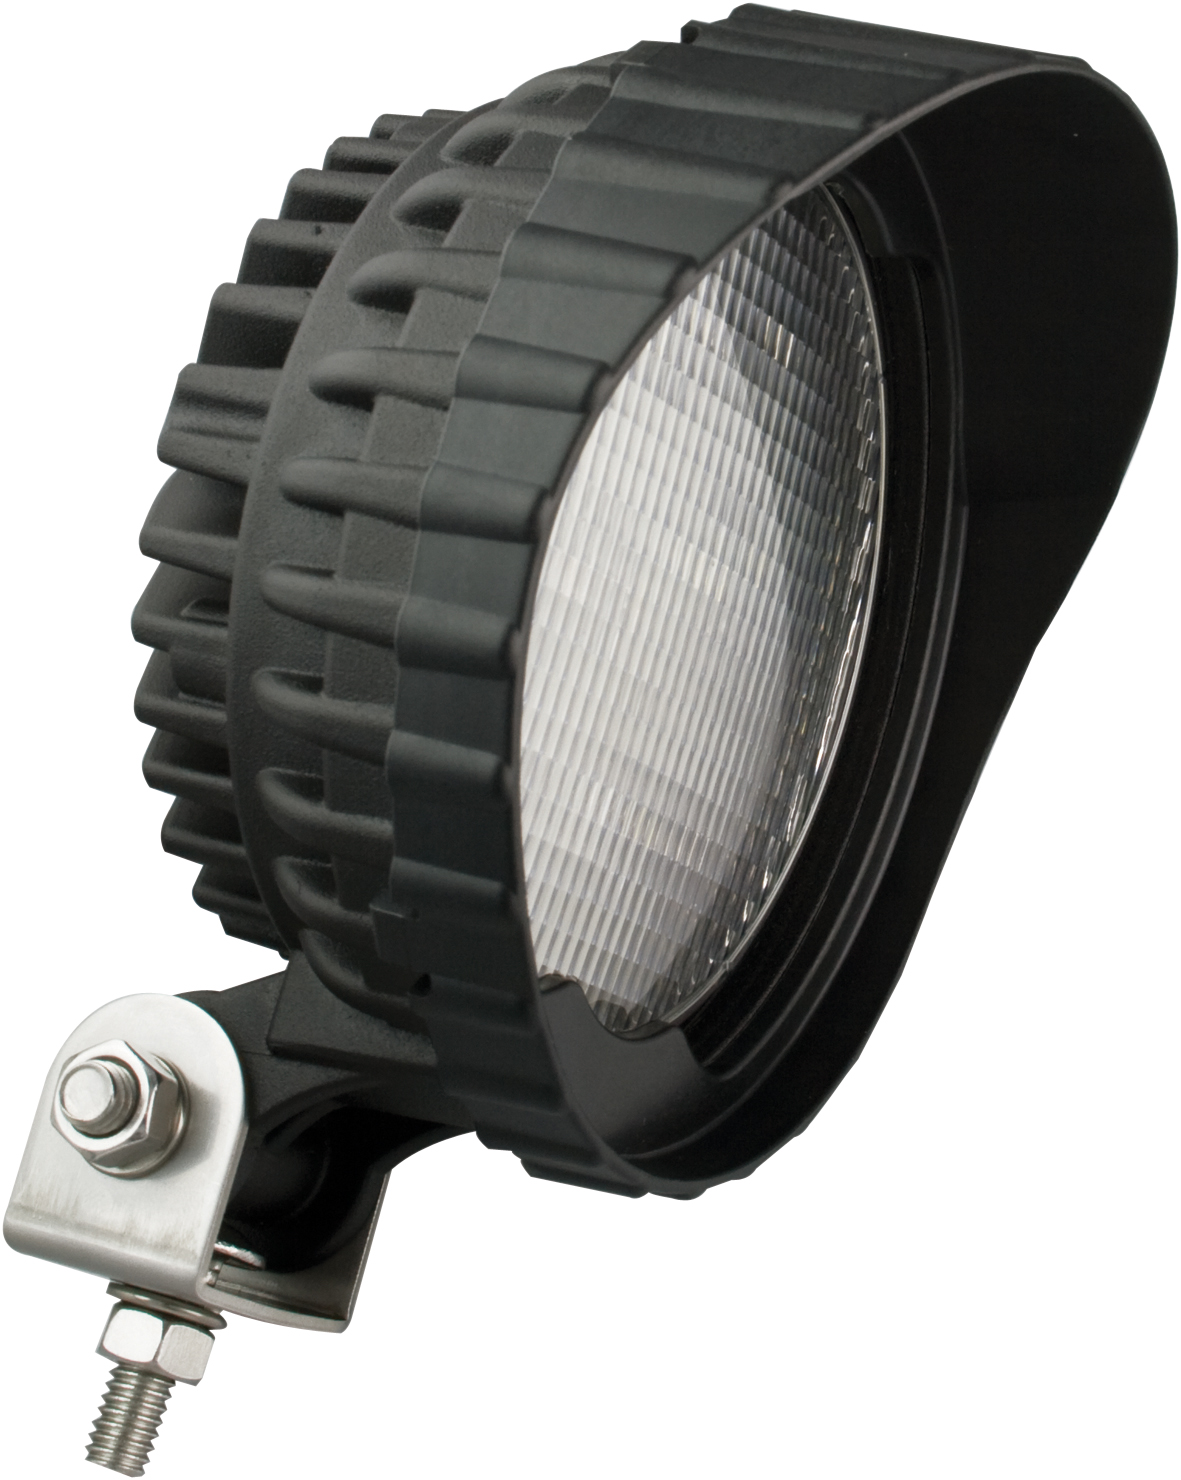 LED Autolamps Round Work Lamp 7450 Series